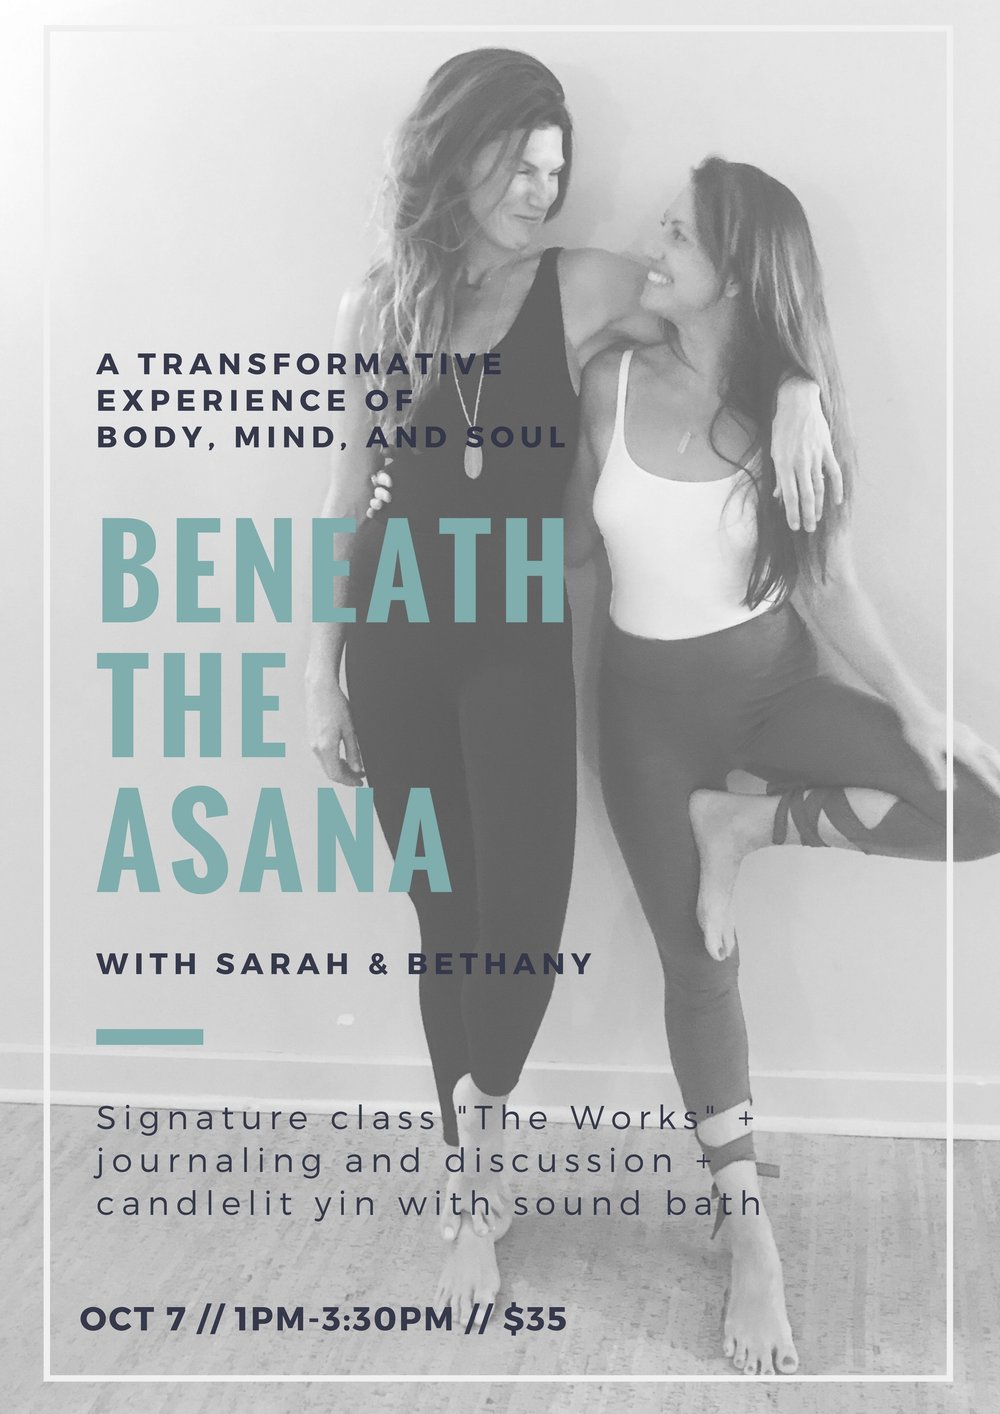 Beneath_the_asana_Poster.jpg